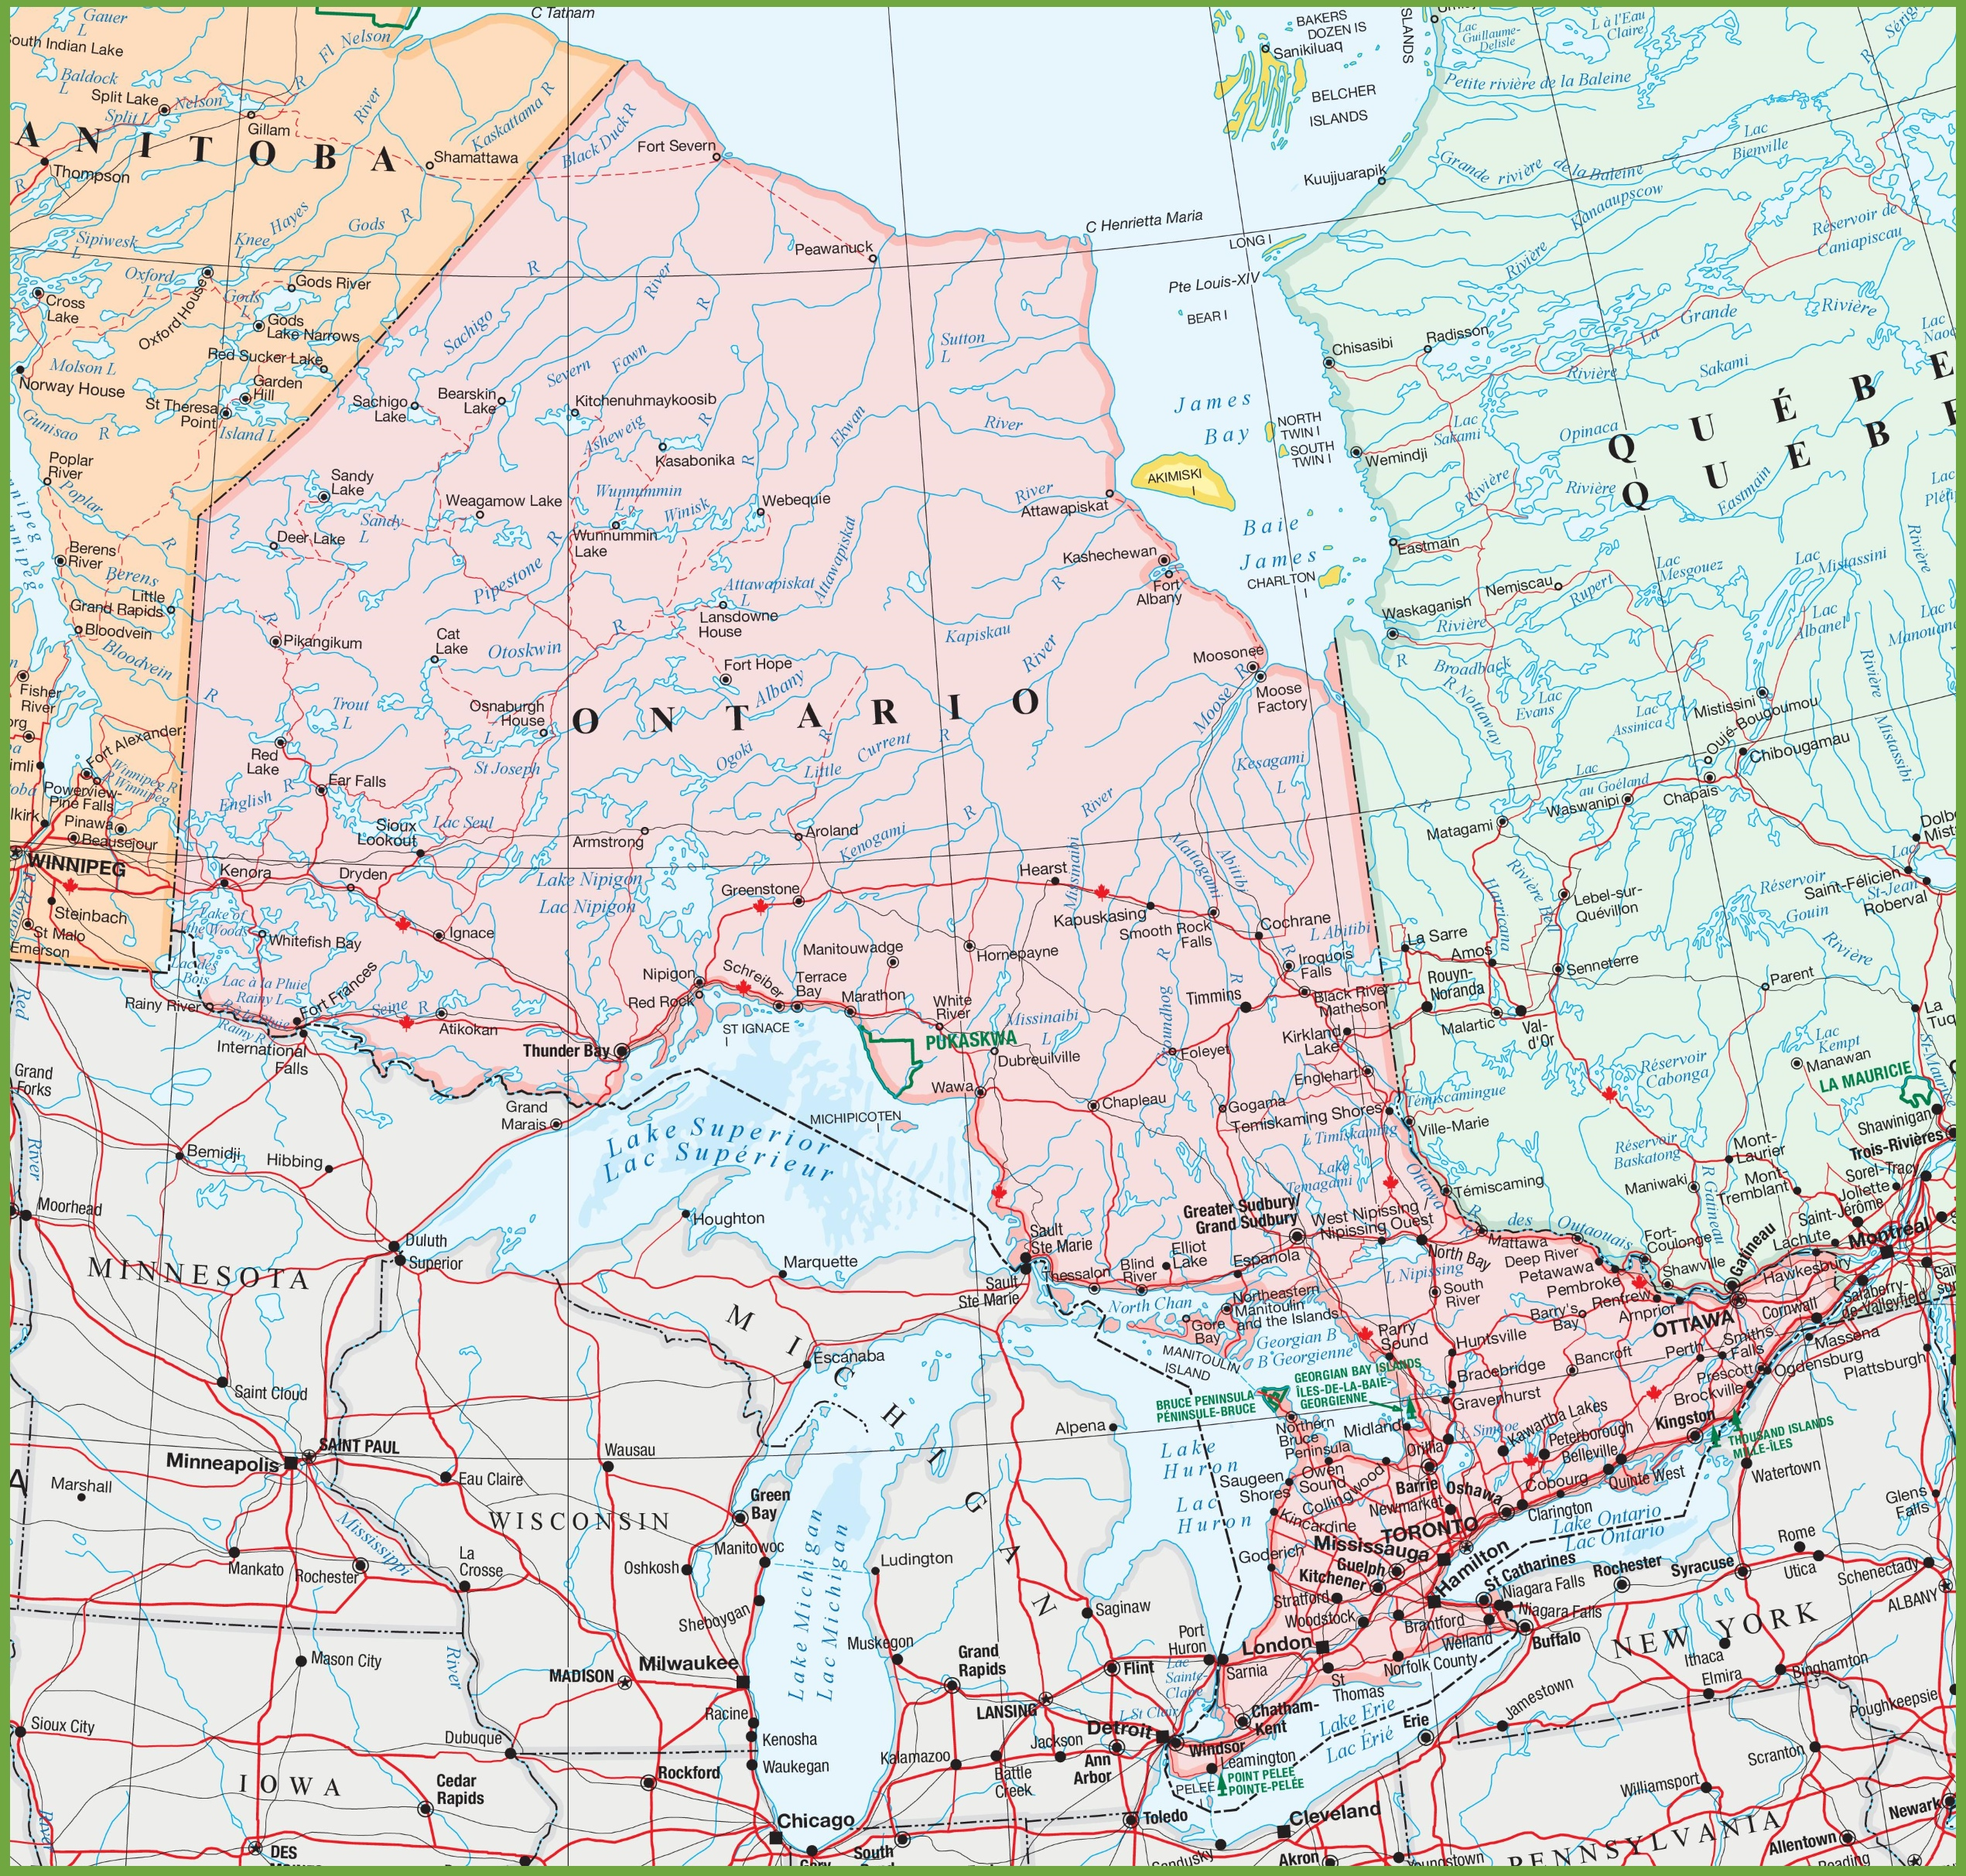 Map Of Canada With Cities And Provinces.Map Of Ontario With Cities And Towns